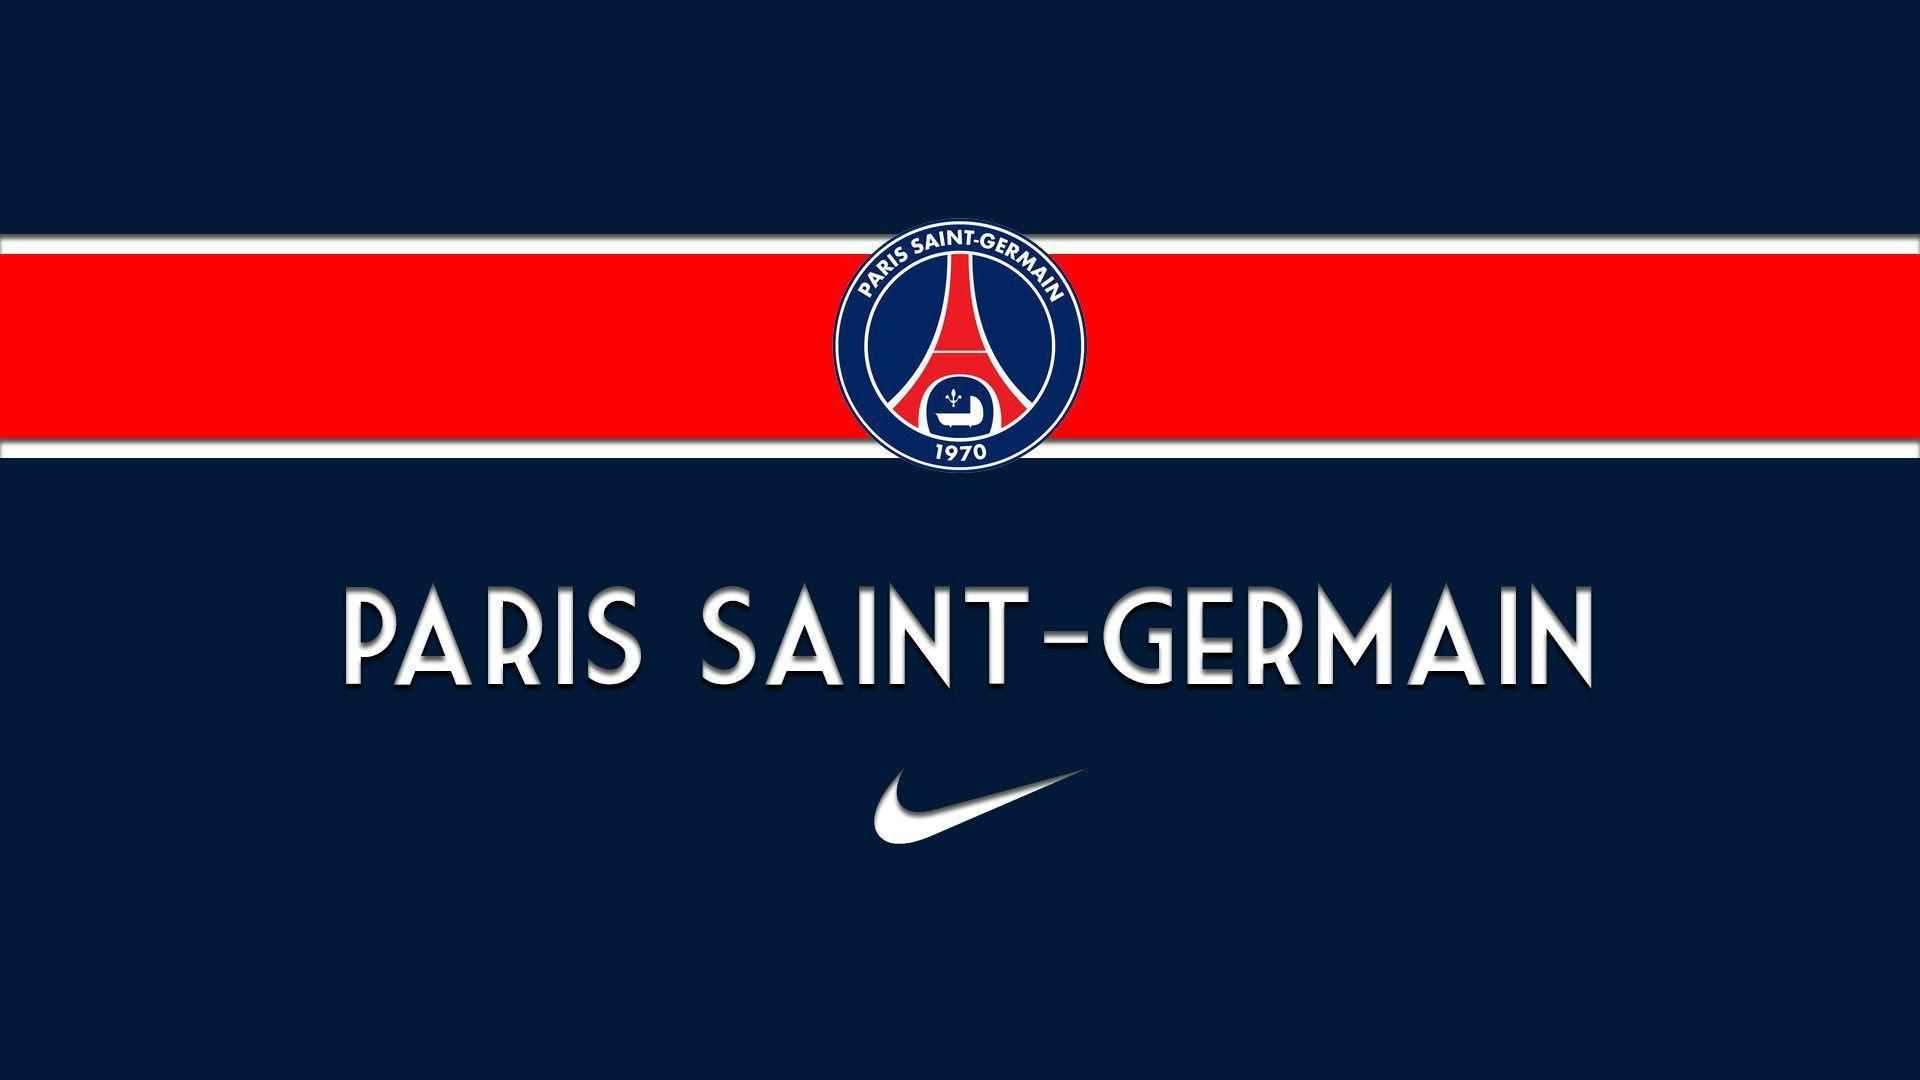 paris saint germain logo - photo #13